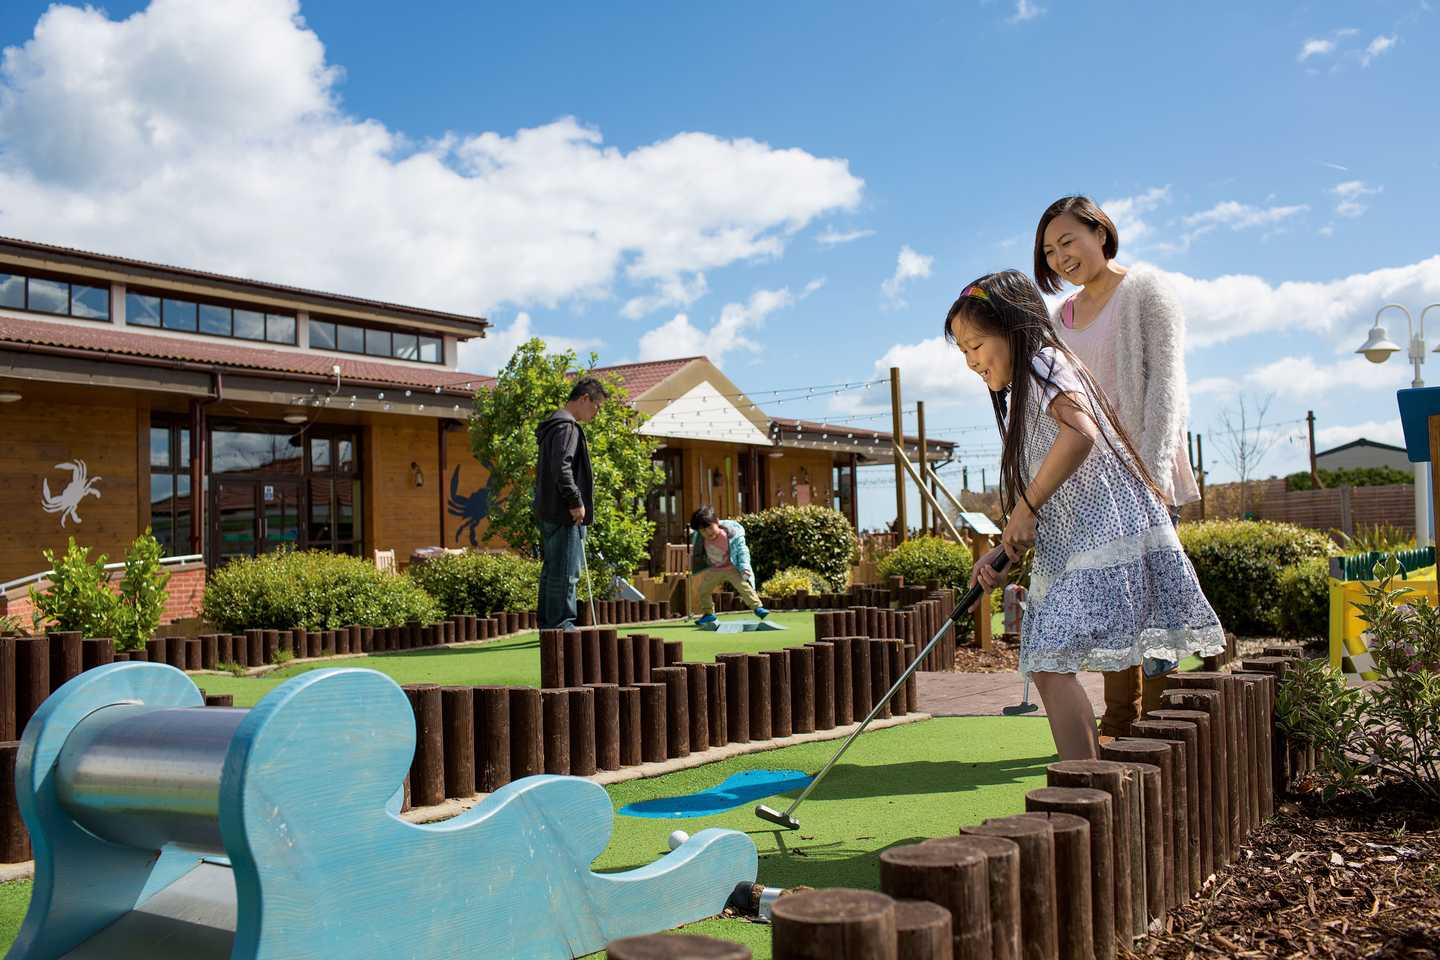 Guests playing on the adventure golf course